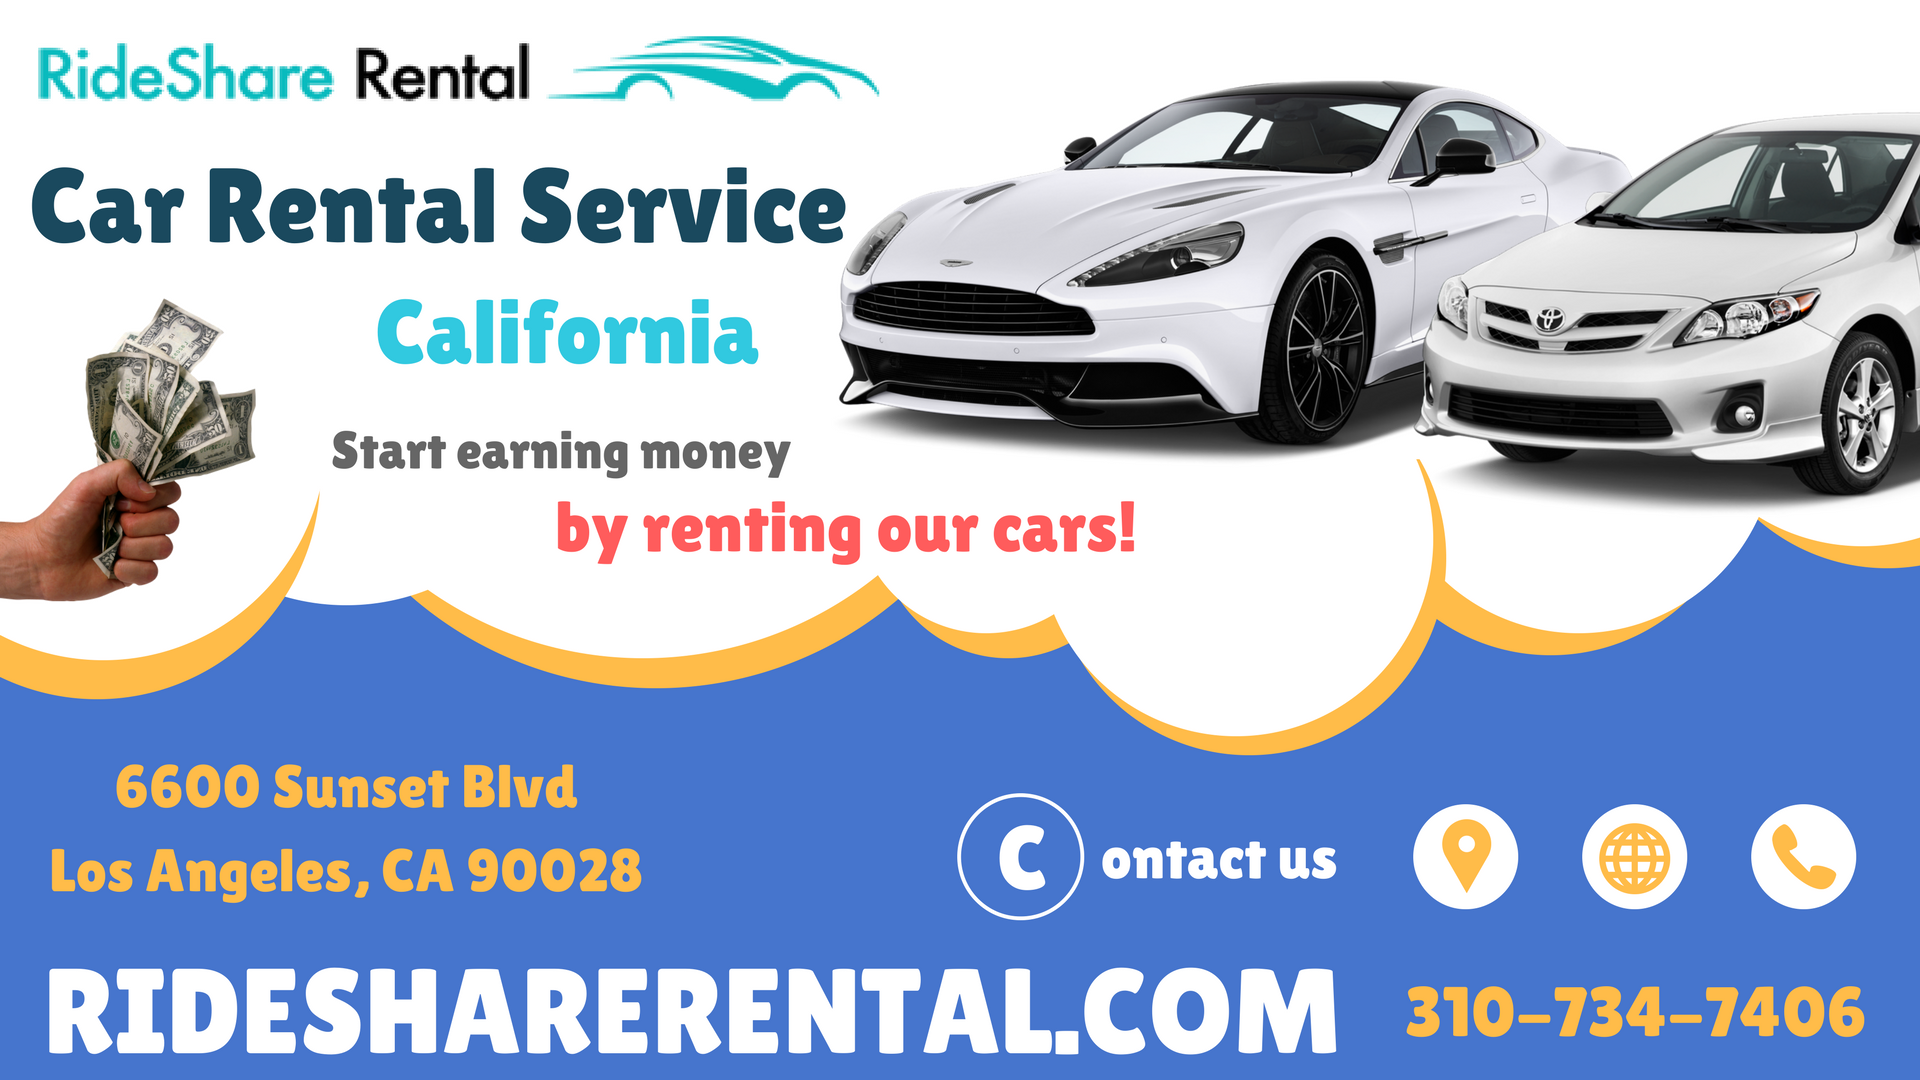 Car Rental Company In California Car Rental Service Car Rental